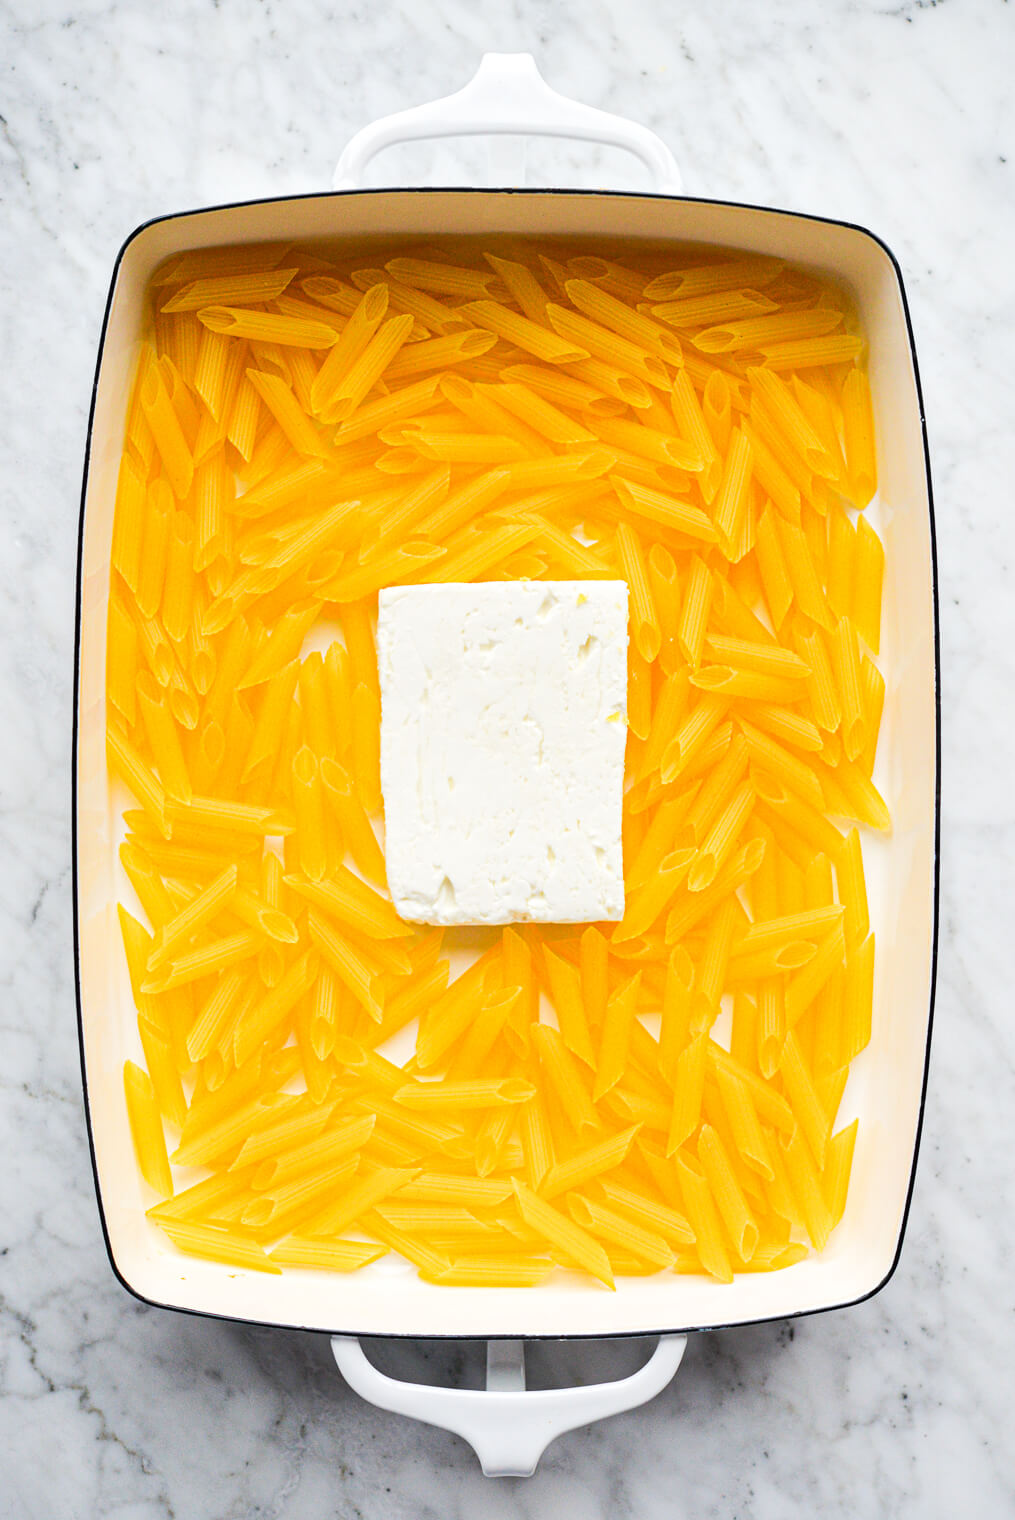 a white baking dish with uncooked penne pasta and a block of feta cheese in it